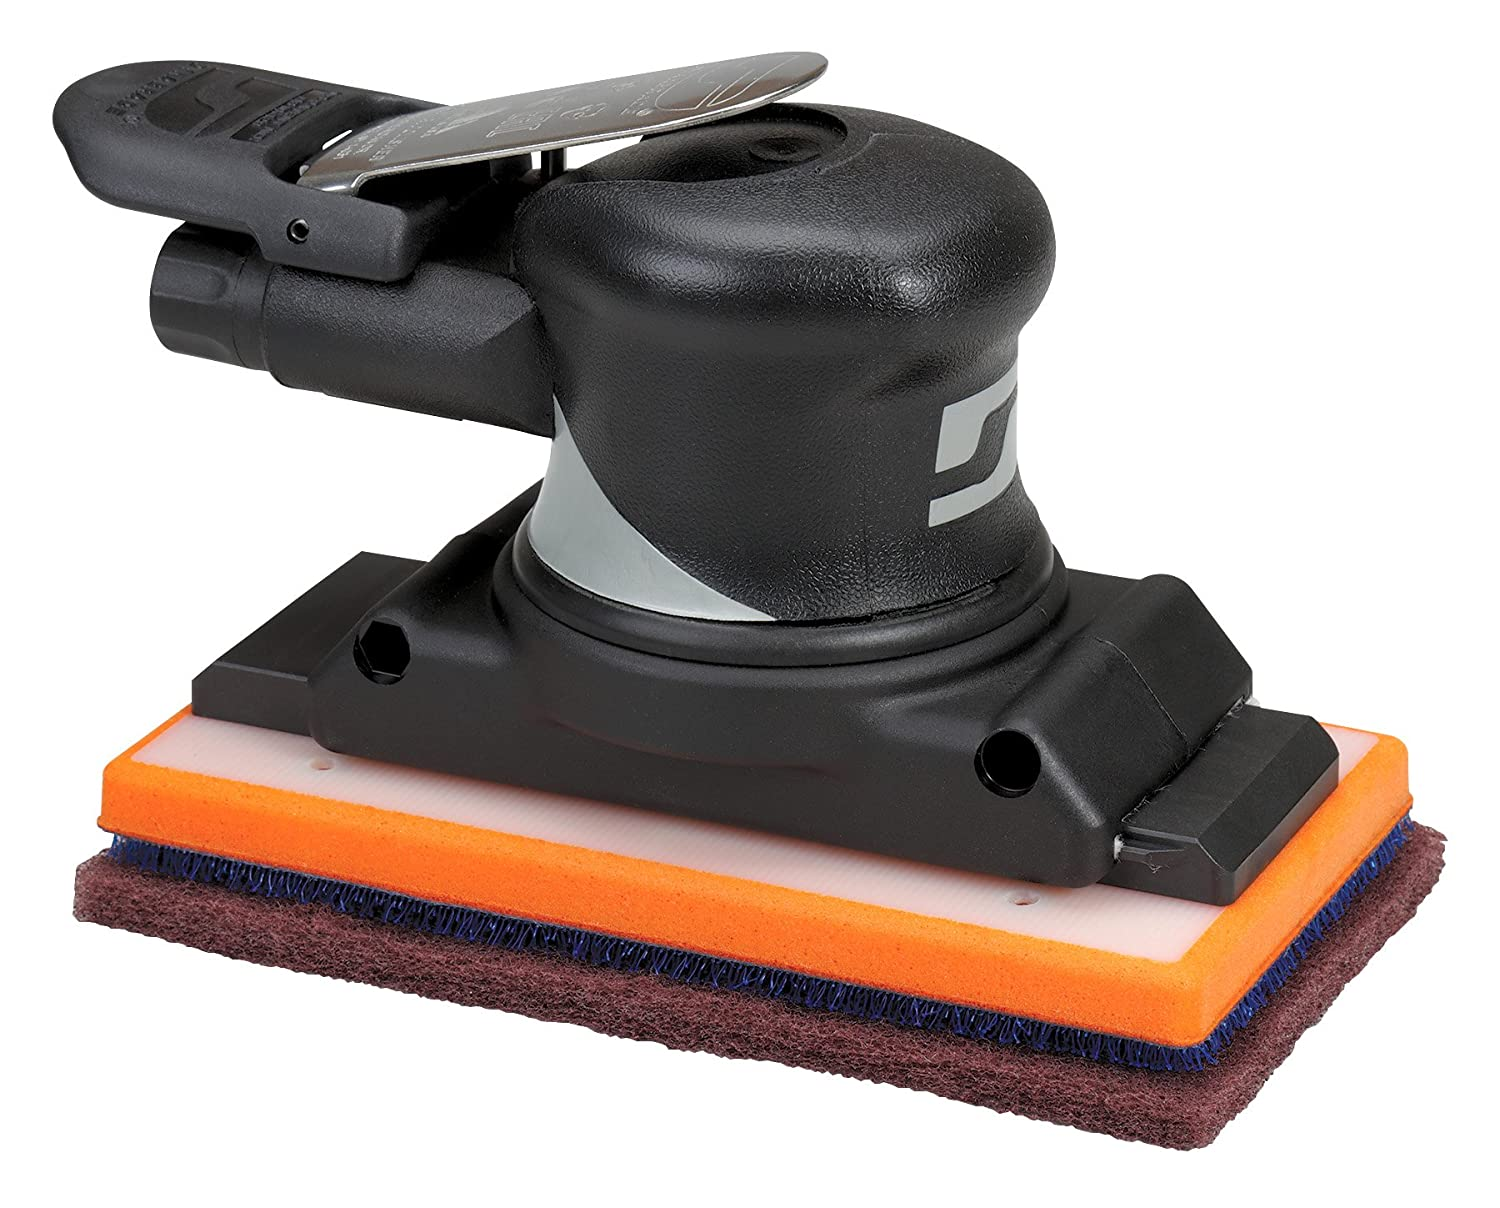 Dynabrade 57405 2-3/4-Inch Wide by 8-Inch Length Pad Non-Vacuum Dynaline Sander Kit, Black by Dynabrade  B00065TOZ6